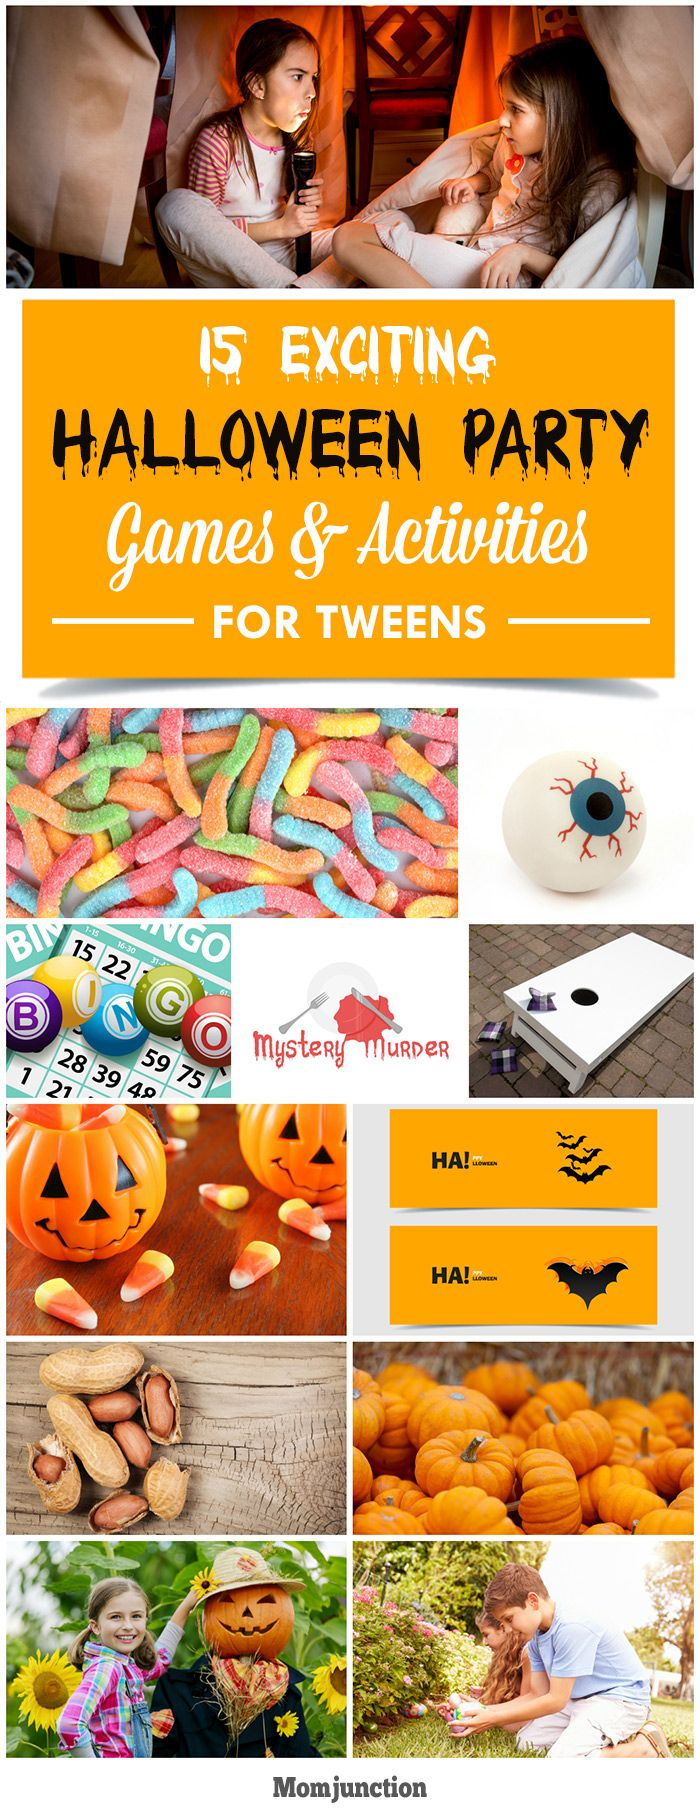 12 Halloween Games And Activities For Teens And Tweens ...